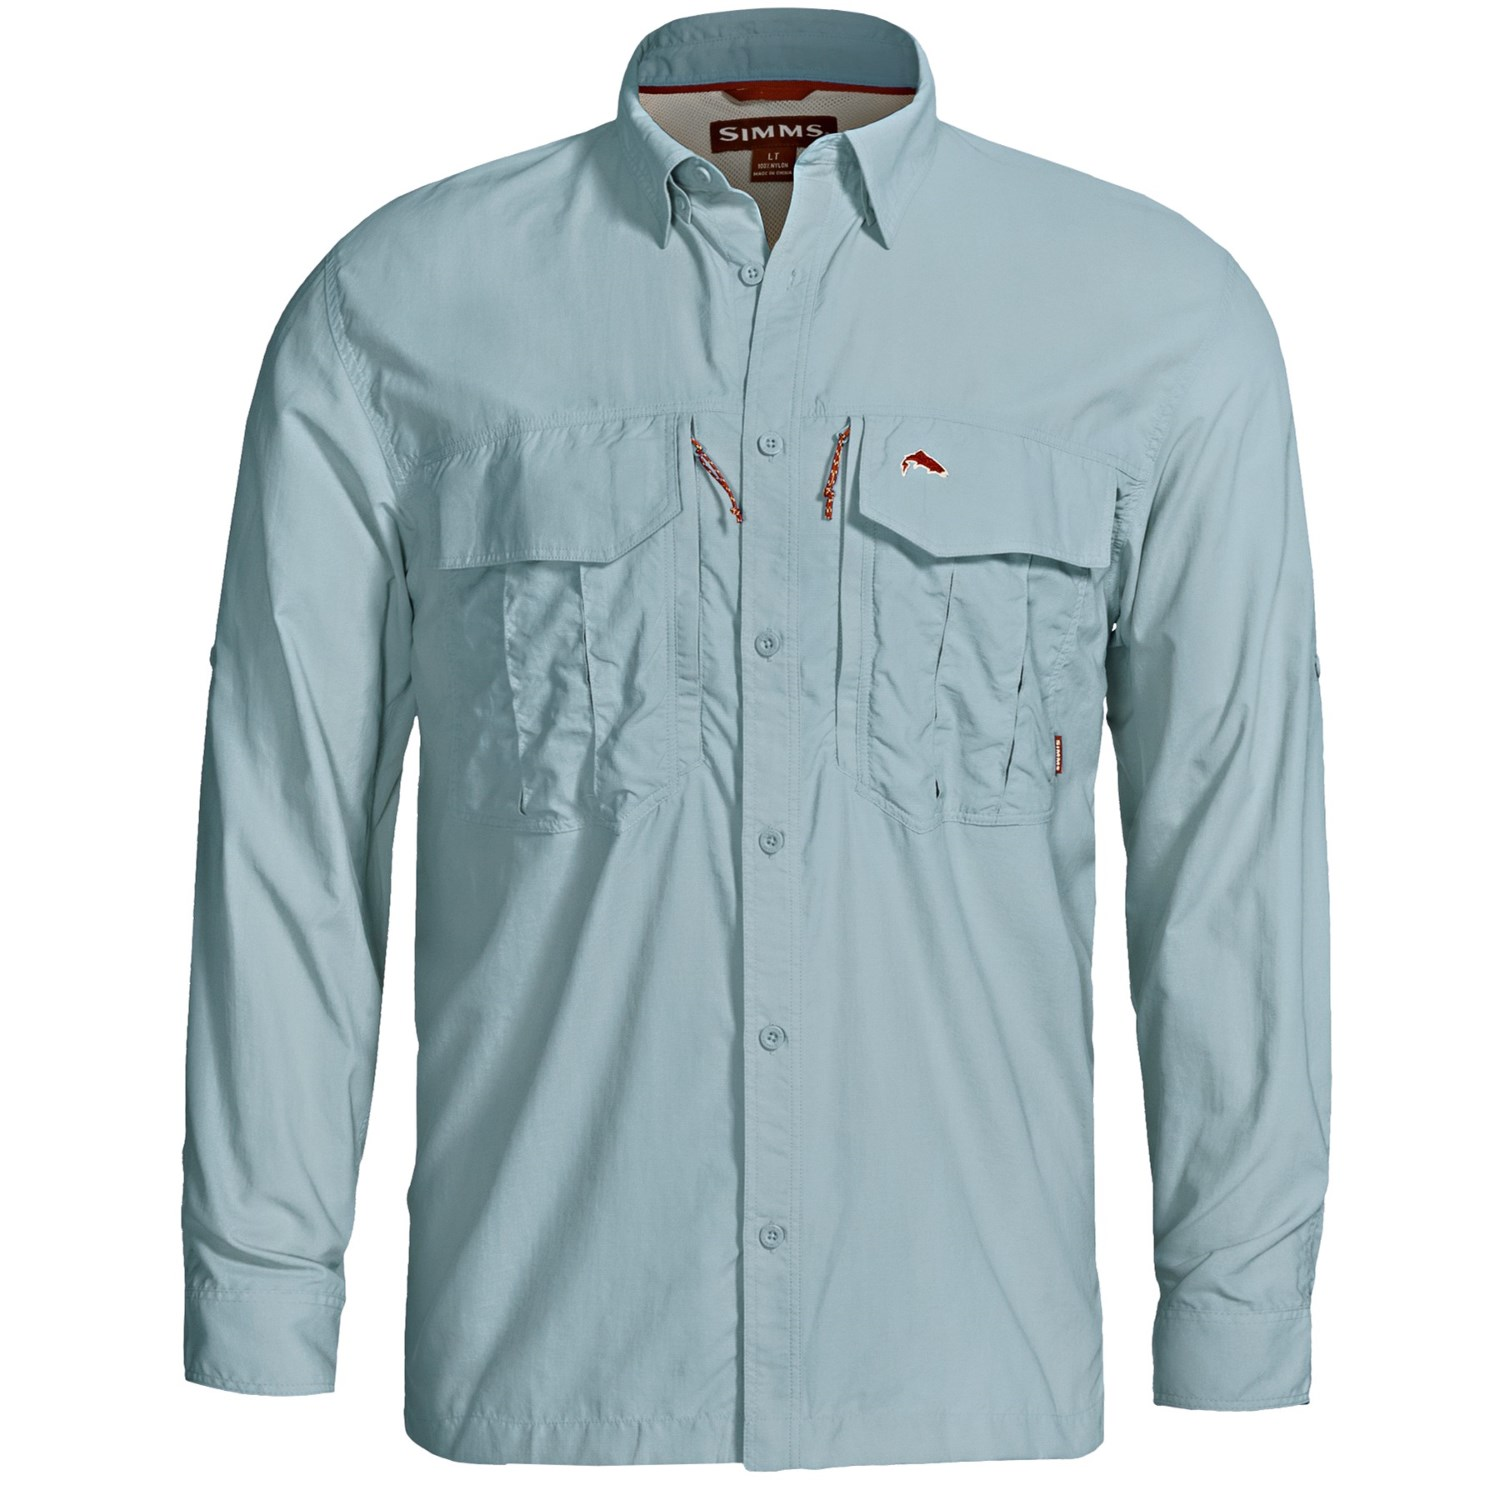 simms cor3 guide fishing shirt upf 30 long sleeve for